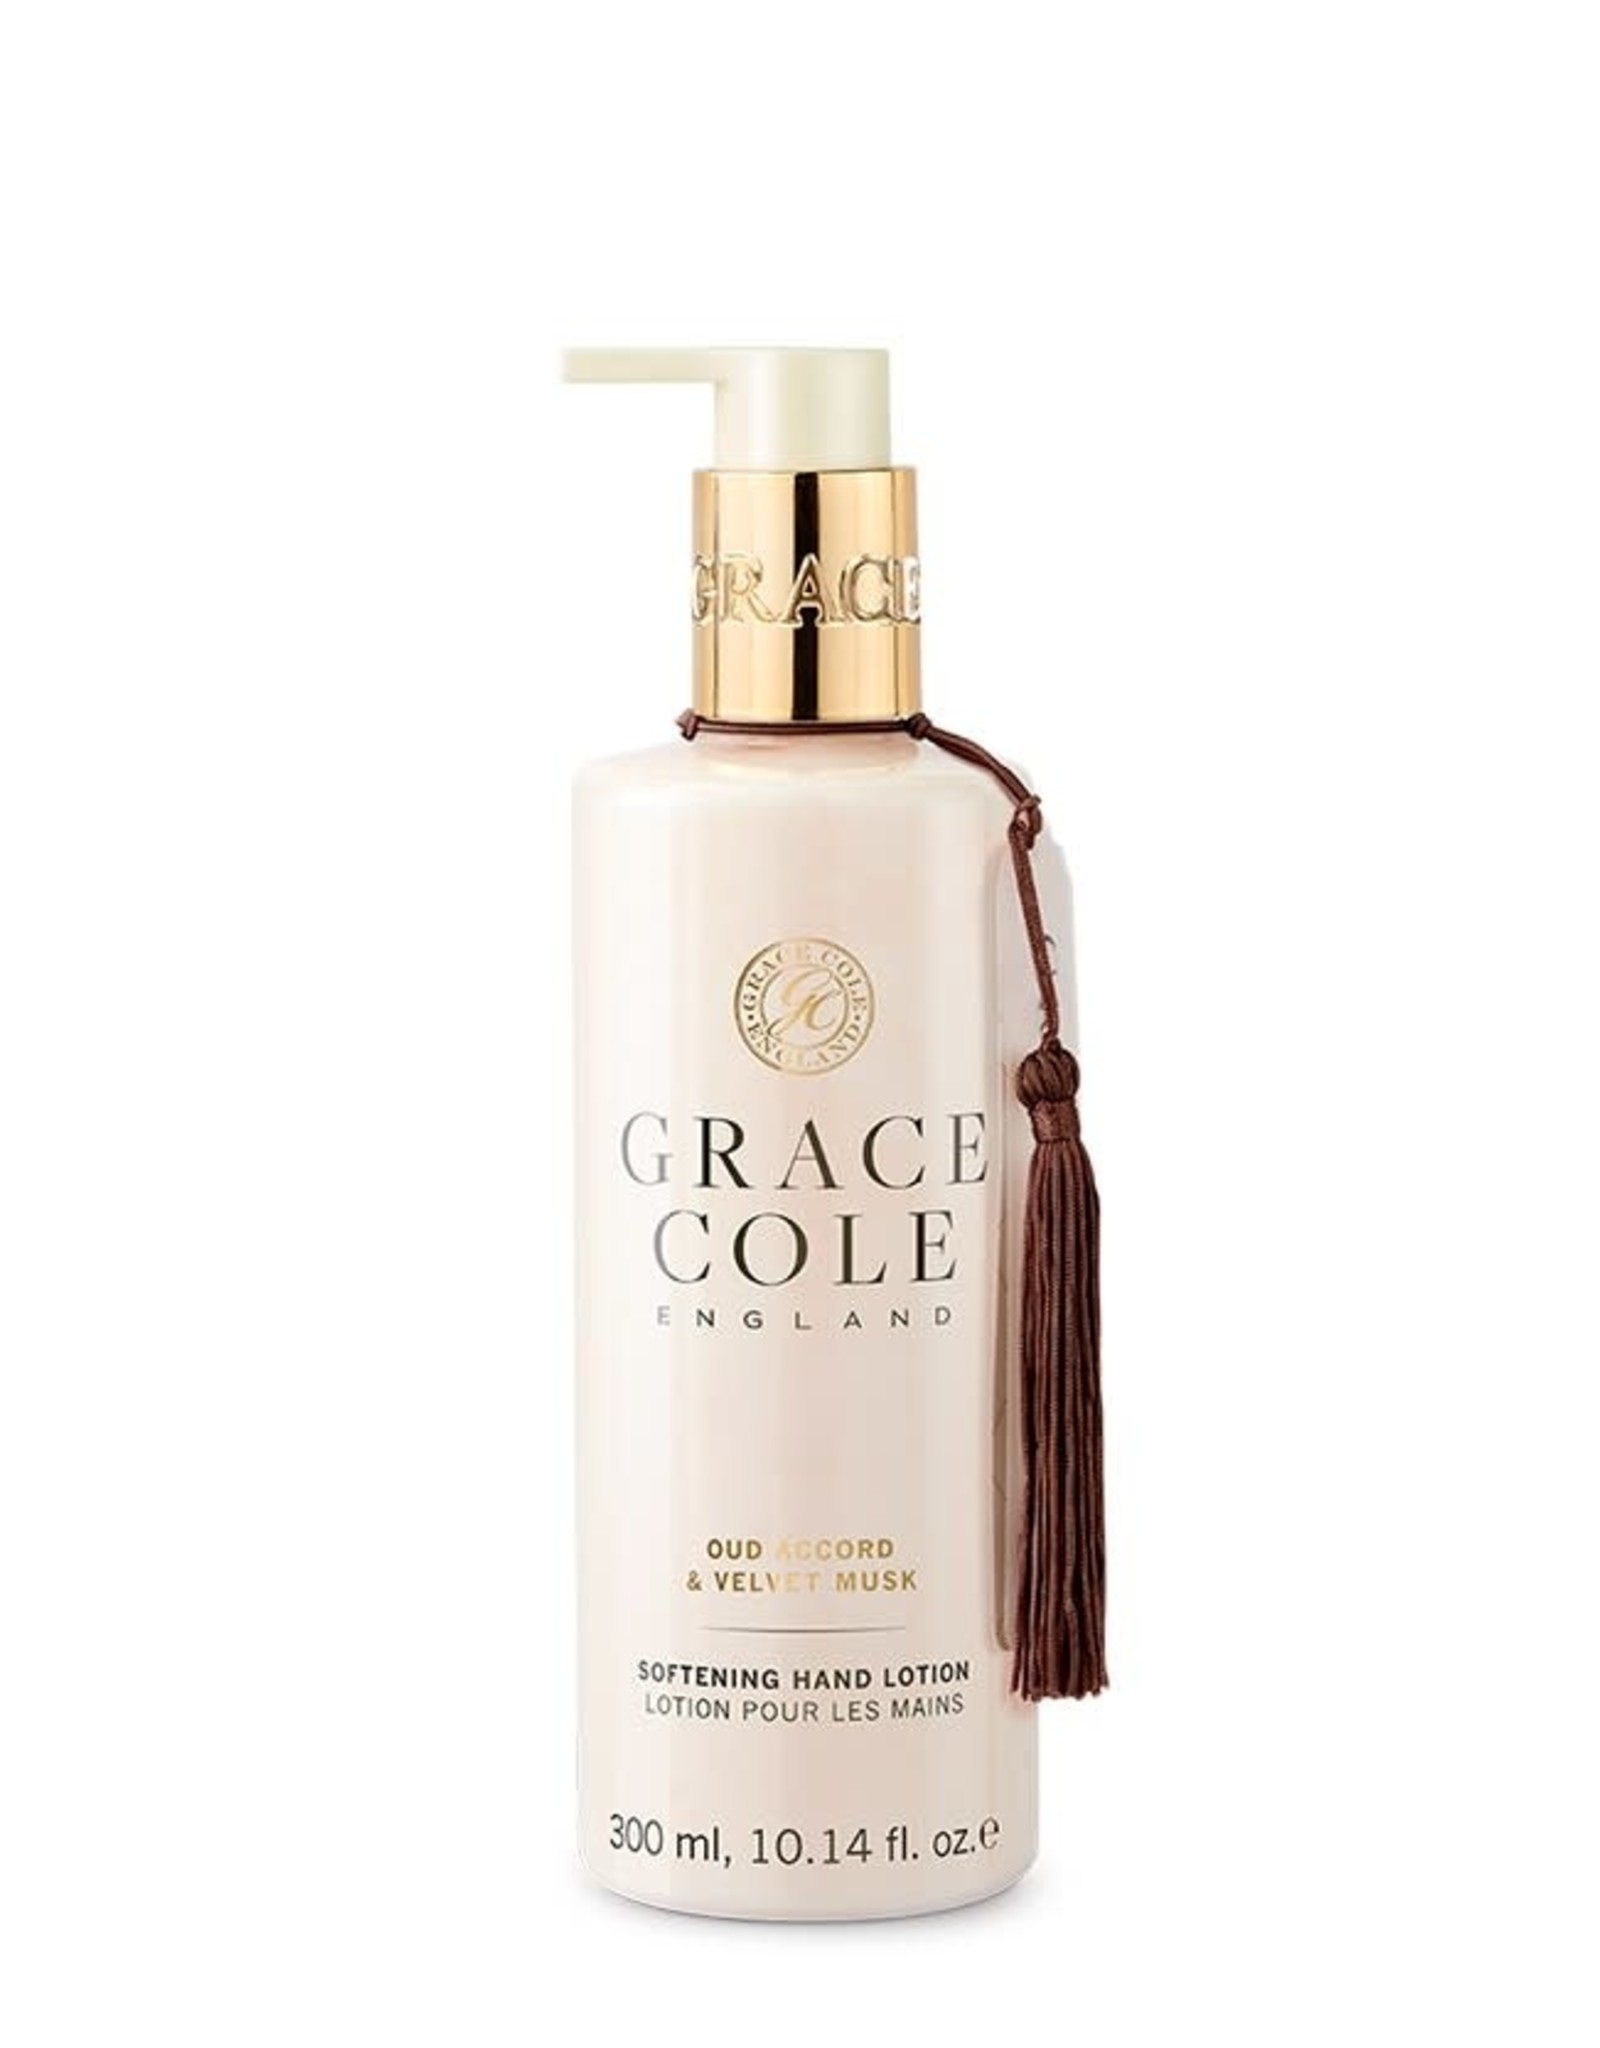 Grace Cole Hand Lotion Oud Accord&Velvet Musk